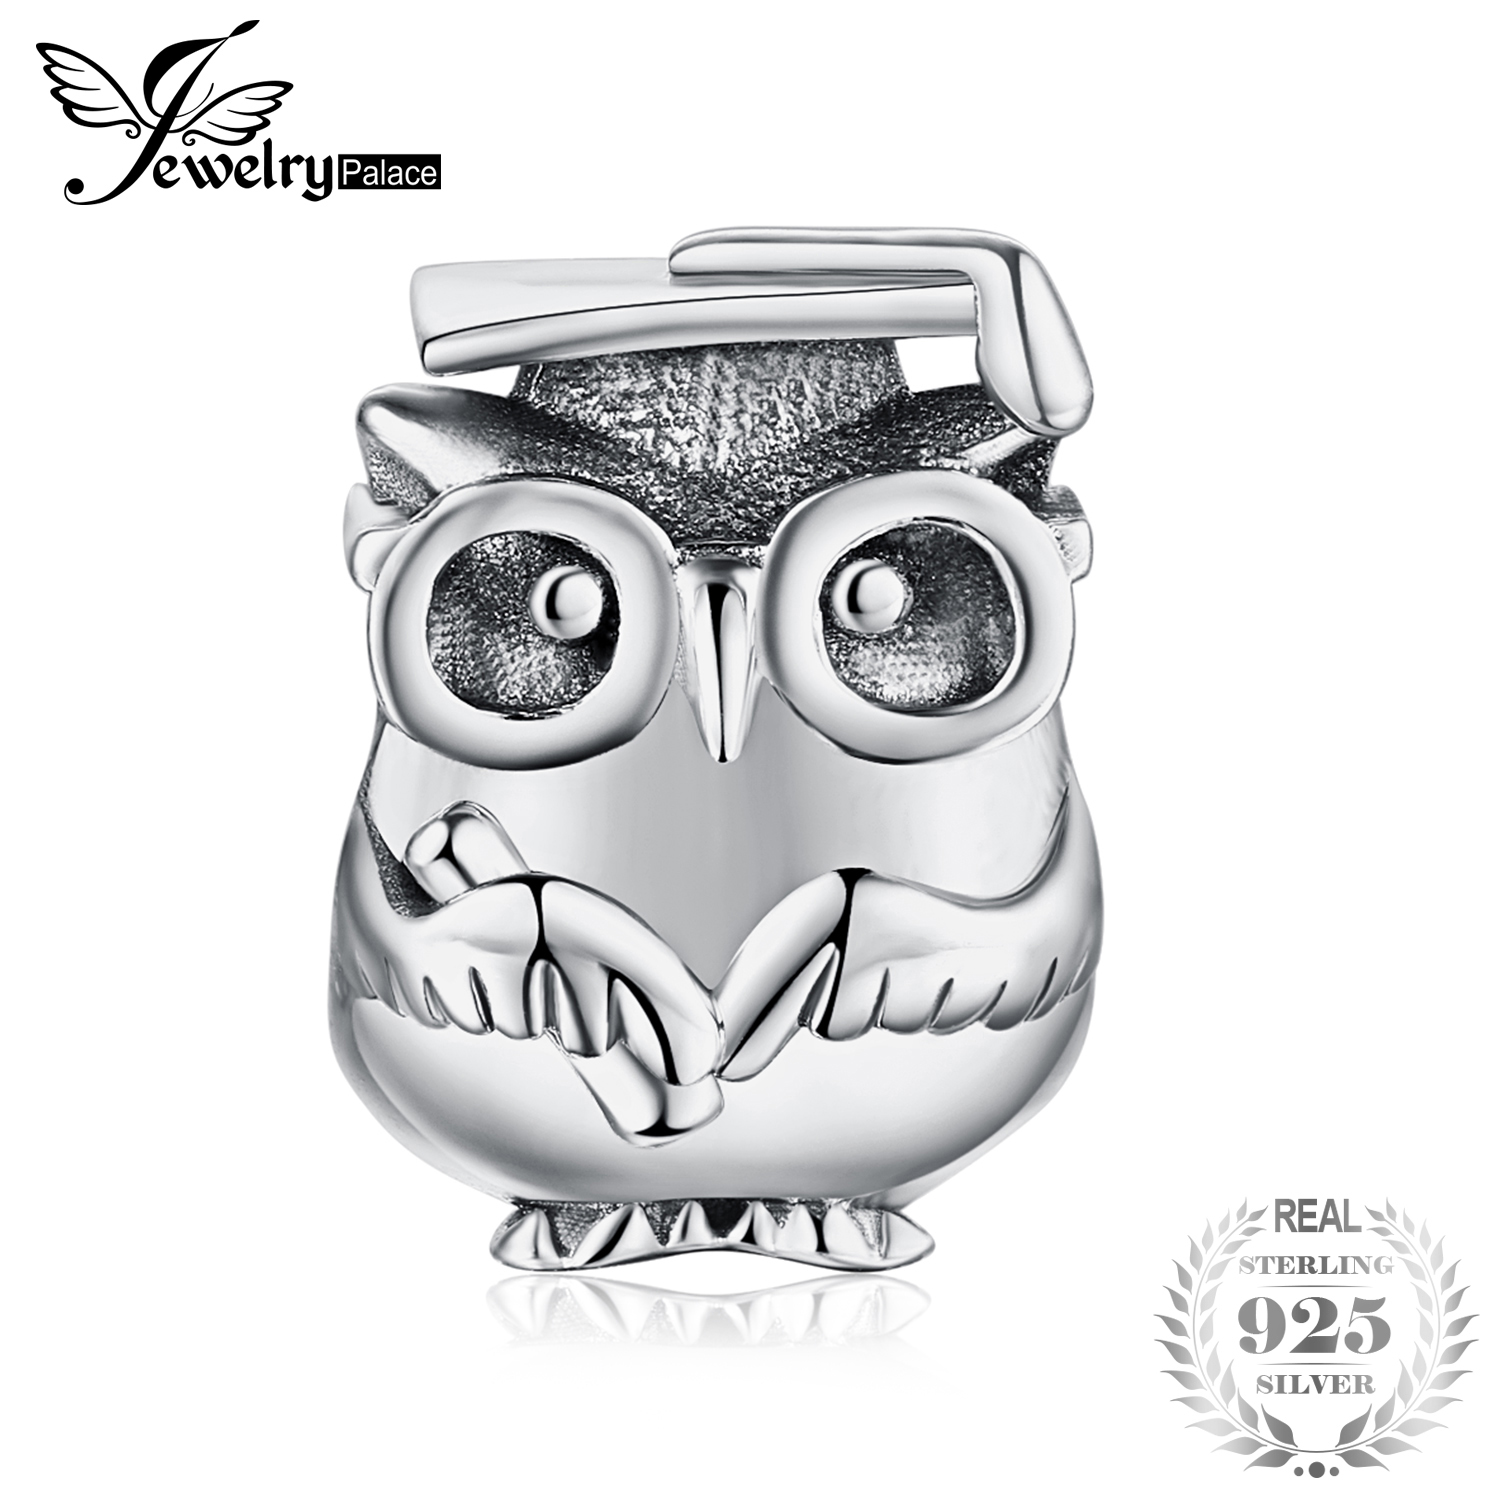 JewelryPalace 100% 925 Sterling Silver Wise Owl Wearing Glasses Beads Charms Fashion DIY Beads Bracelets For Women Fine JewelryJewelryPalace 100% 925 Sterling Silver Wise Owl Wearing Glasses Beads Charms Fashion DIY Beads Bracelets For Women Fine Jewelry